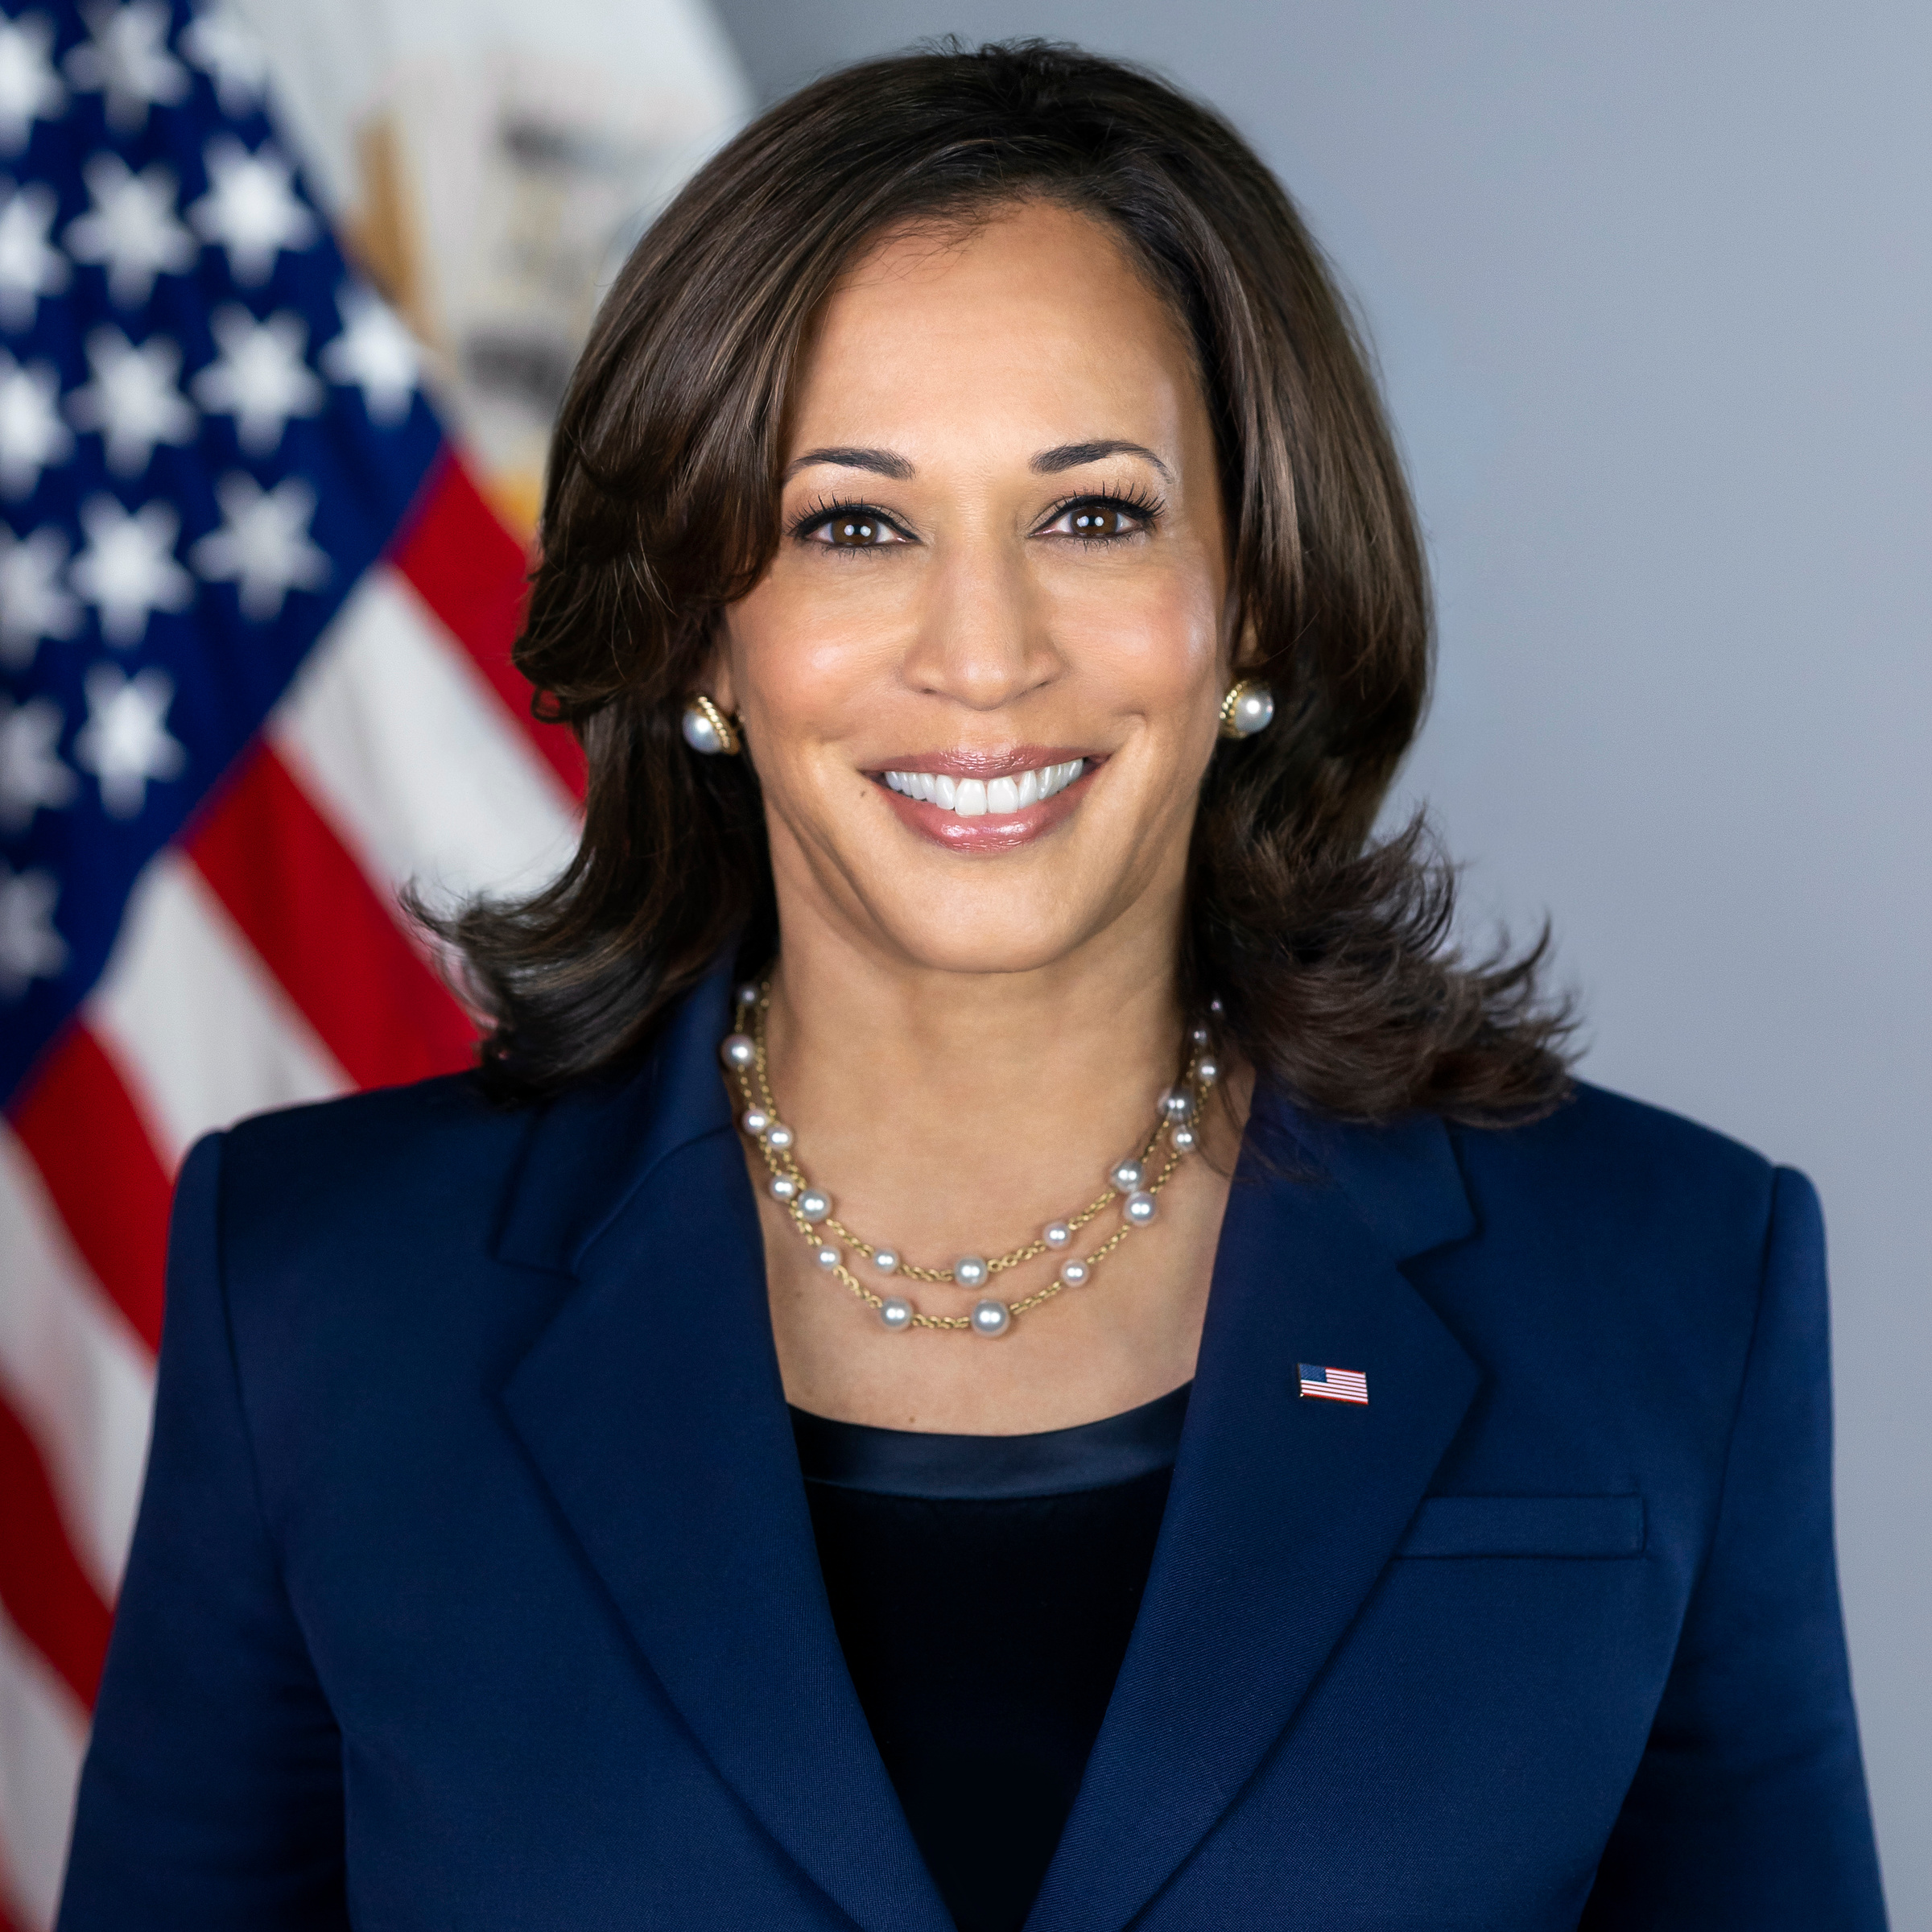 VP Kamala Harris Explains How Our Rights Are Under Attack [INTERVIEW]